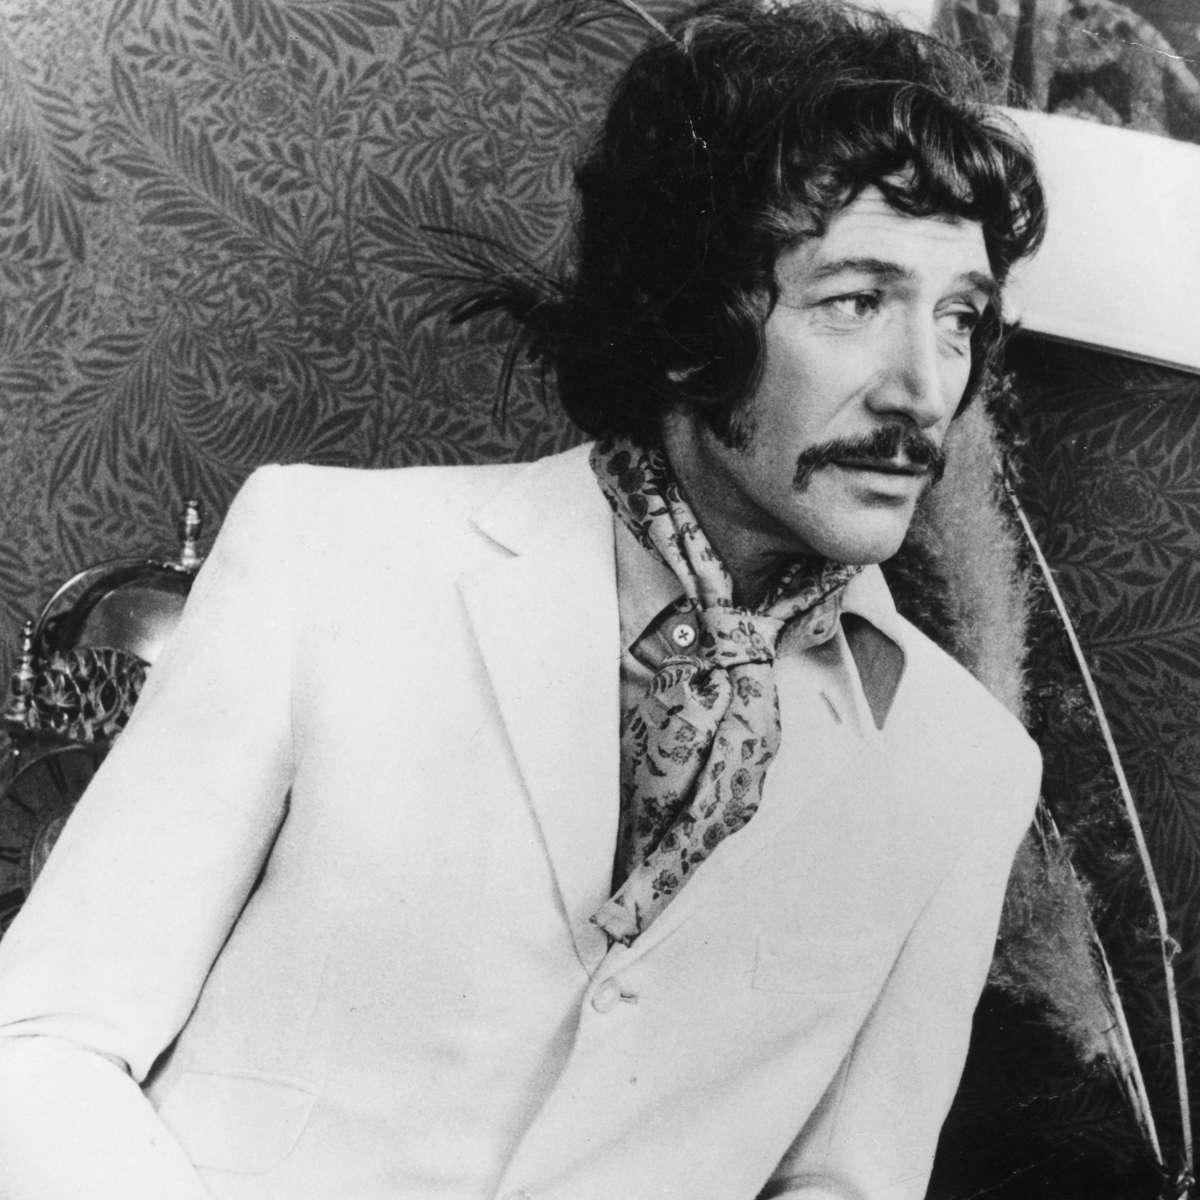 Peter Wyngarde, Doctor Who and Department S actor, dies at 90